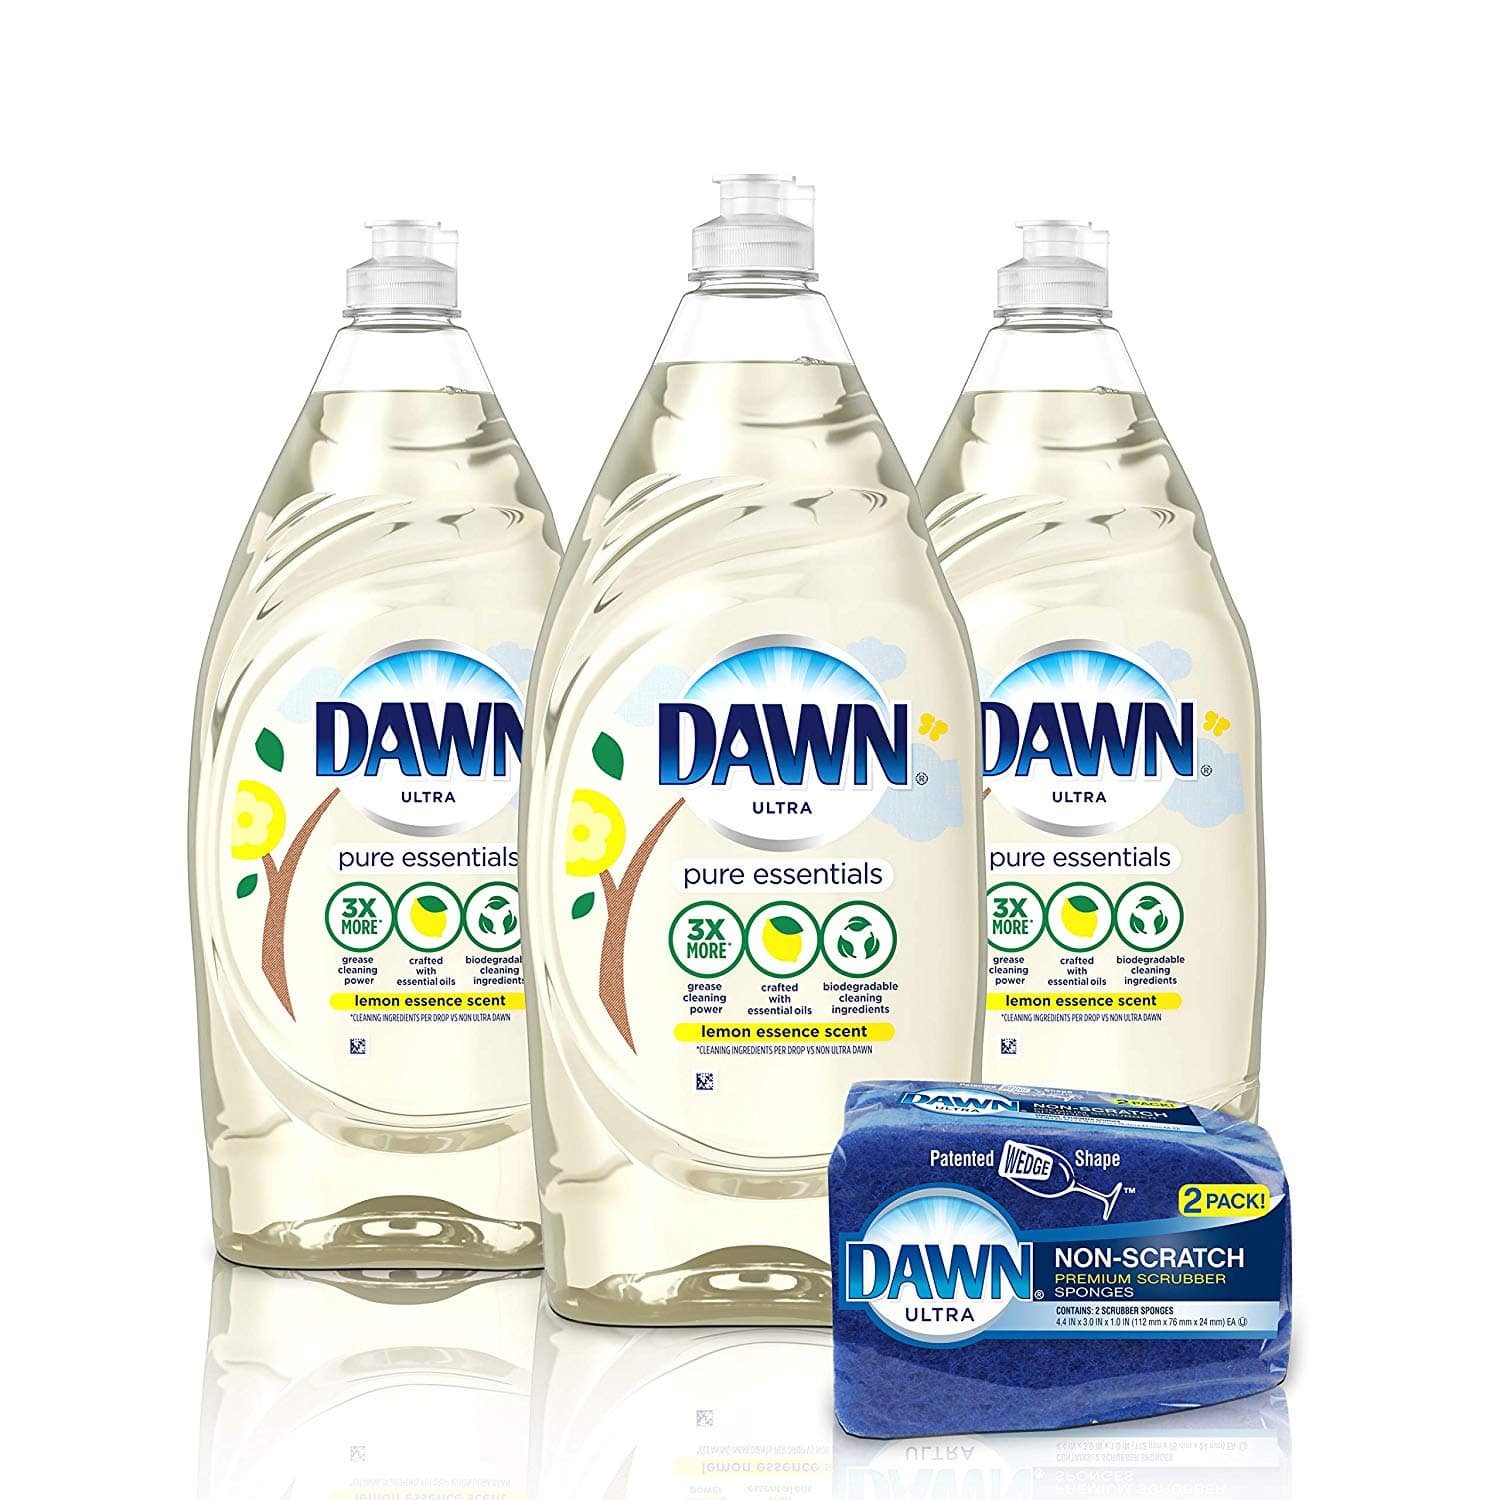 Dawn Pure Essentials Dishwashing Liquid Dish Soap (3x24oz) + Non-Scratch Sponge (2ct), Lemon Essence, 1 Set - $11.00 @ Amazon.com